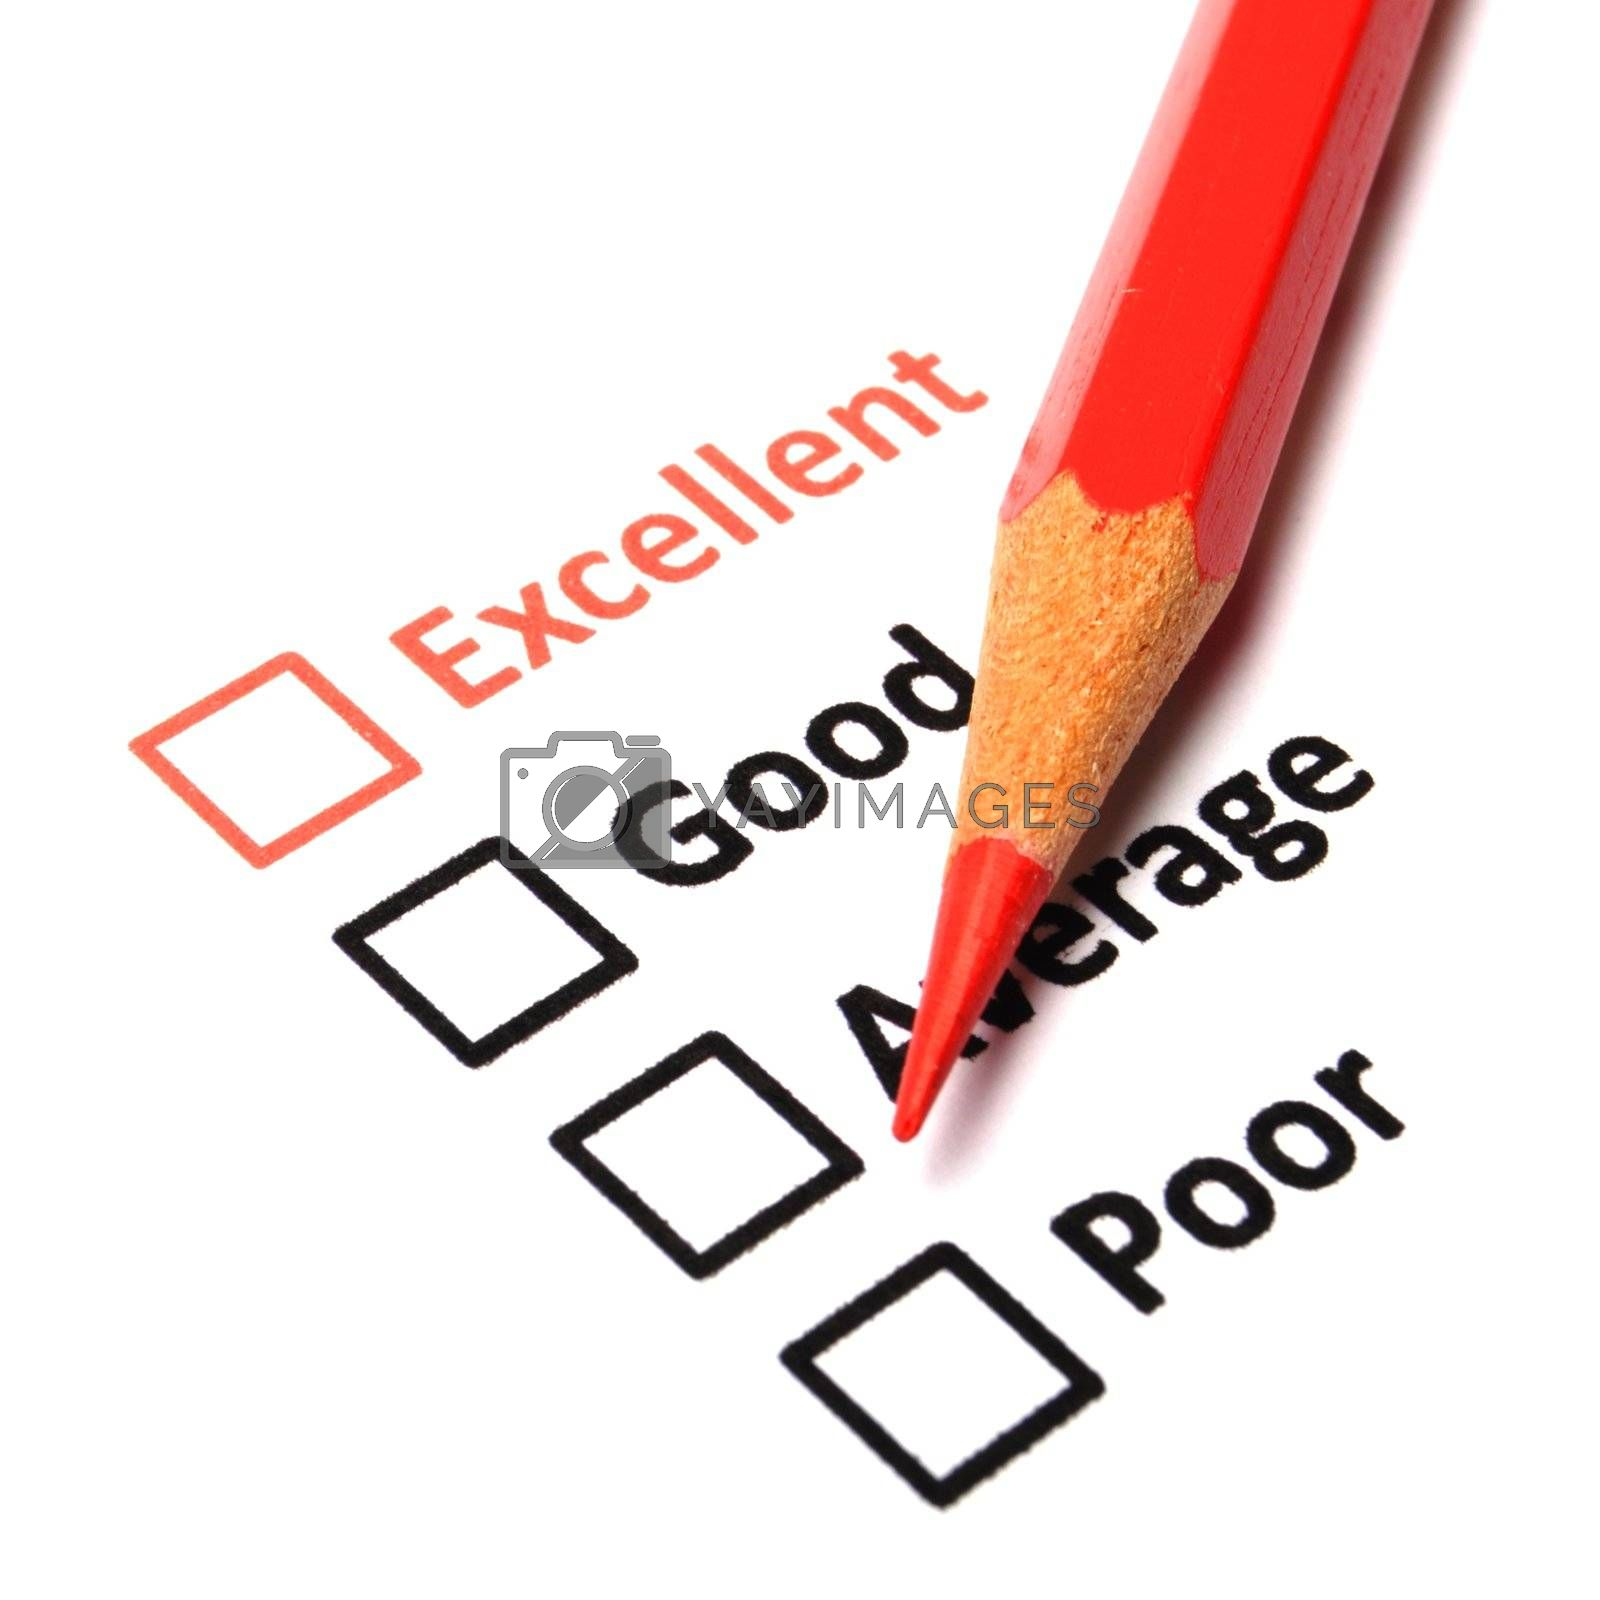 customer satisfaction survey form with checkbox showing marketing concept